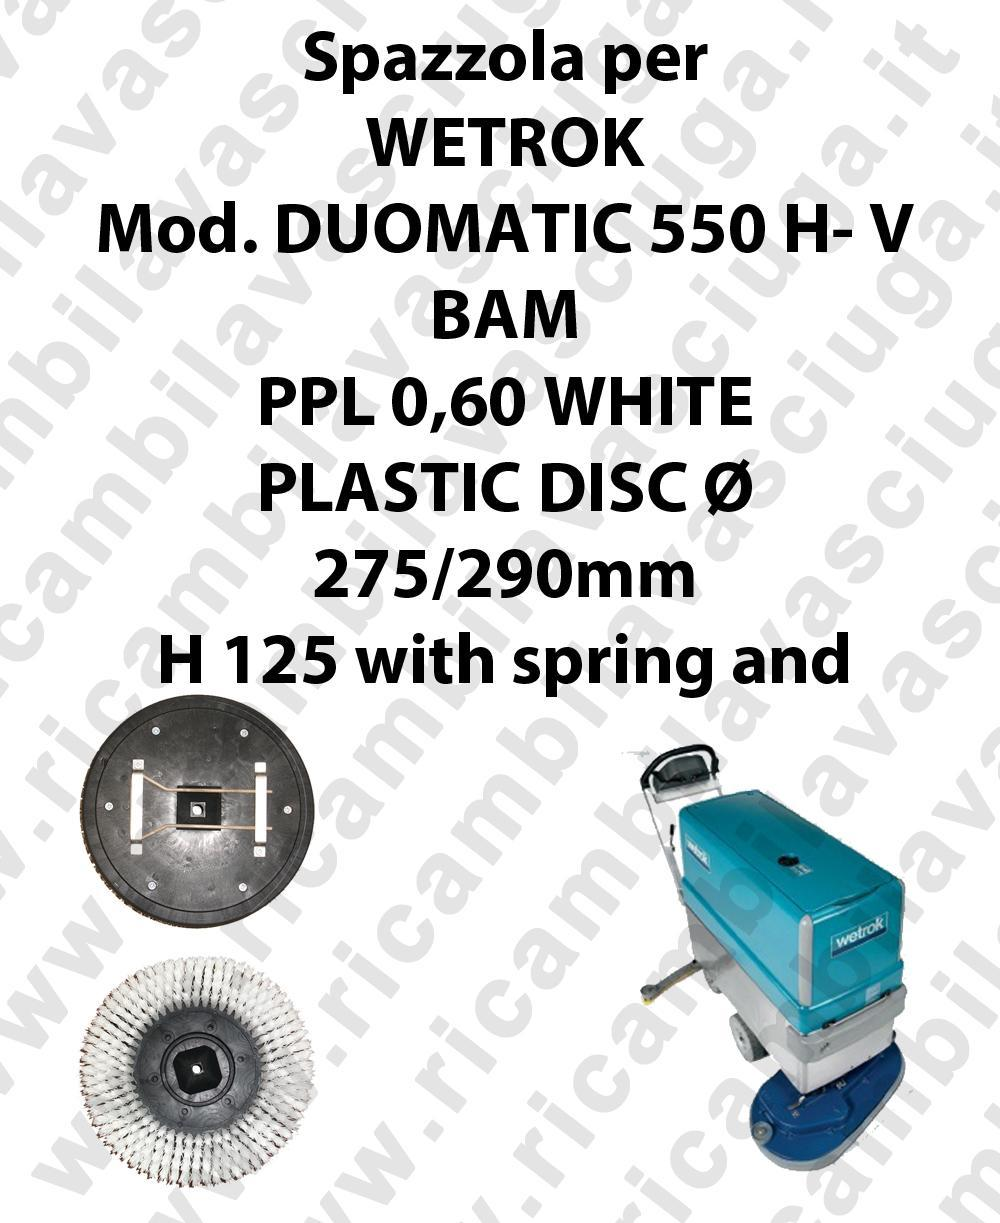 BROSSE A LAVER PPL 0,60 WHITE pour autolaveuses WETROK Reference DUOMATIC 550 H-V BAM